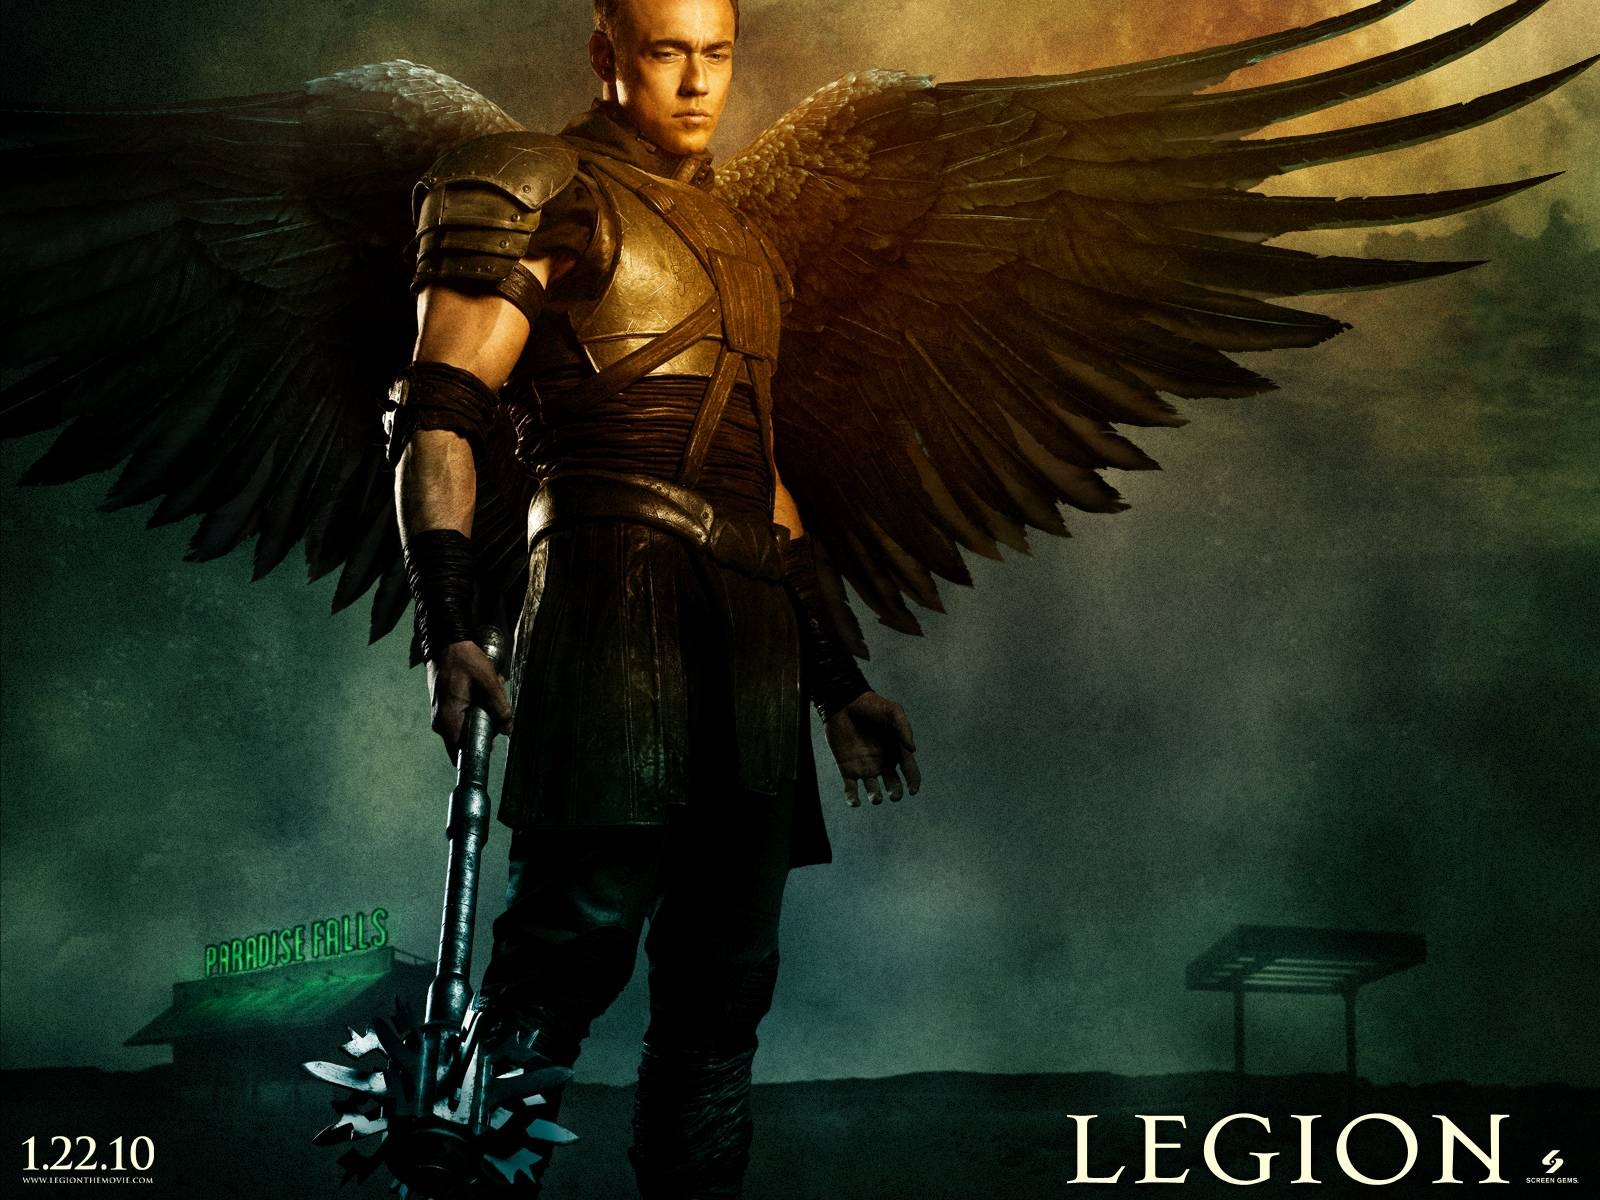 2010 Legion Movie 2 Wallpapers HD Wallpapers 1600x1200